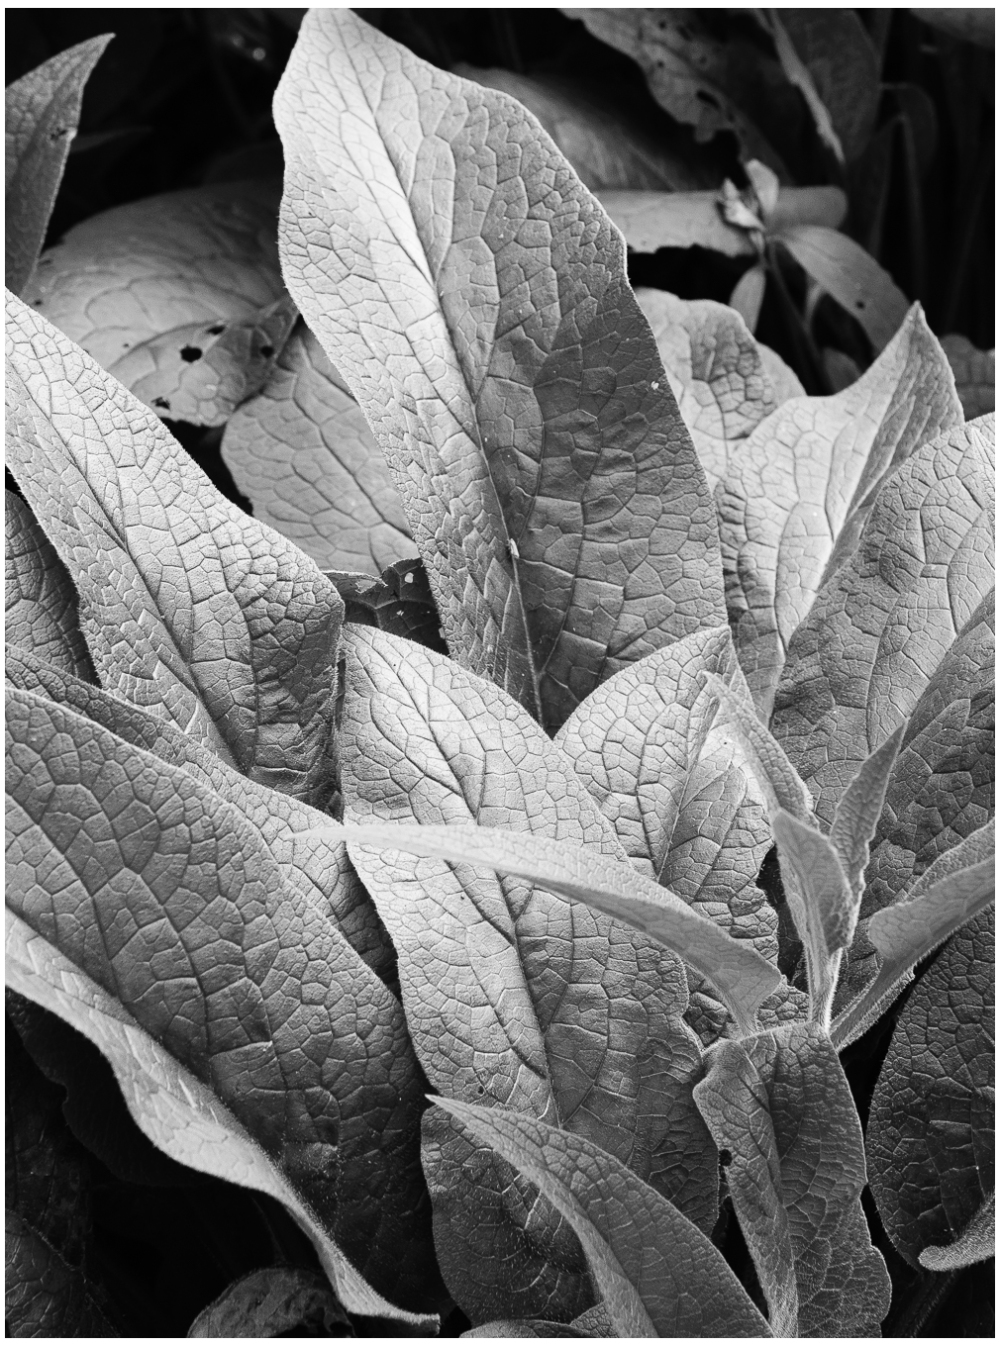 Plant in silver light